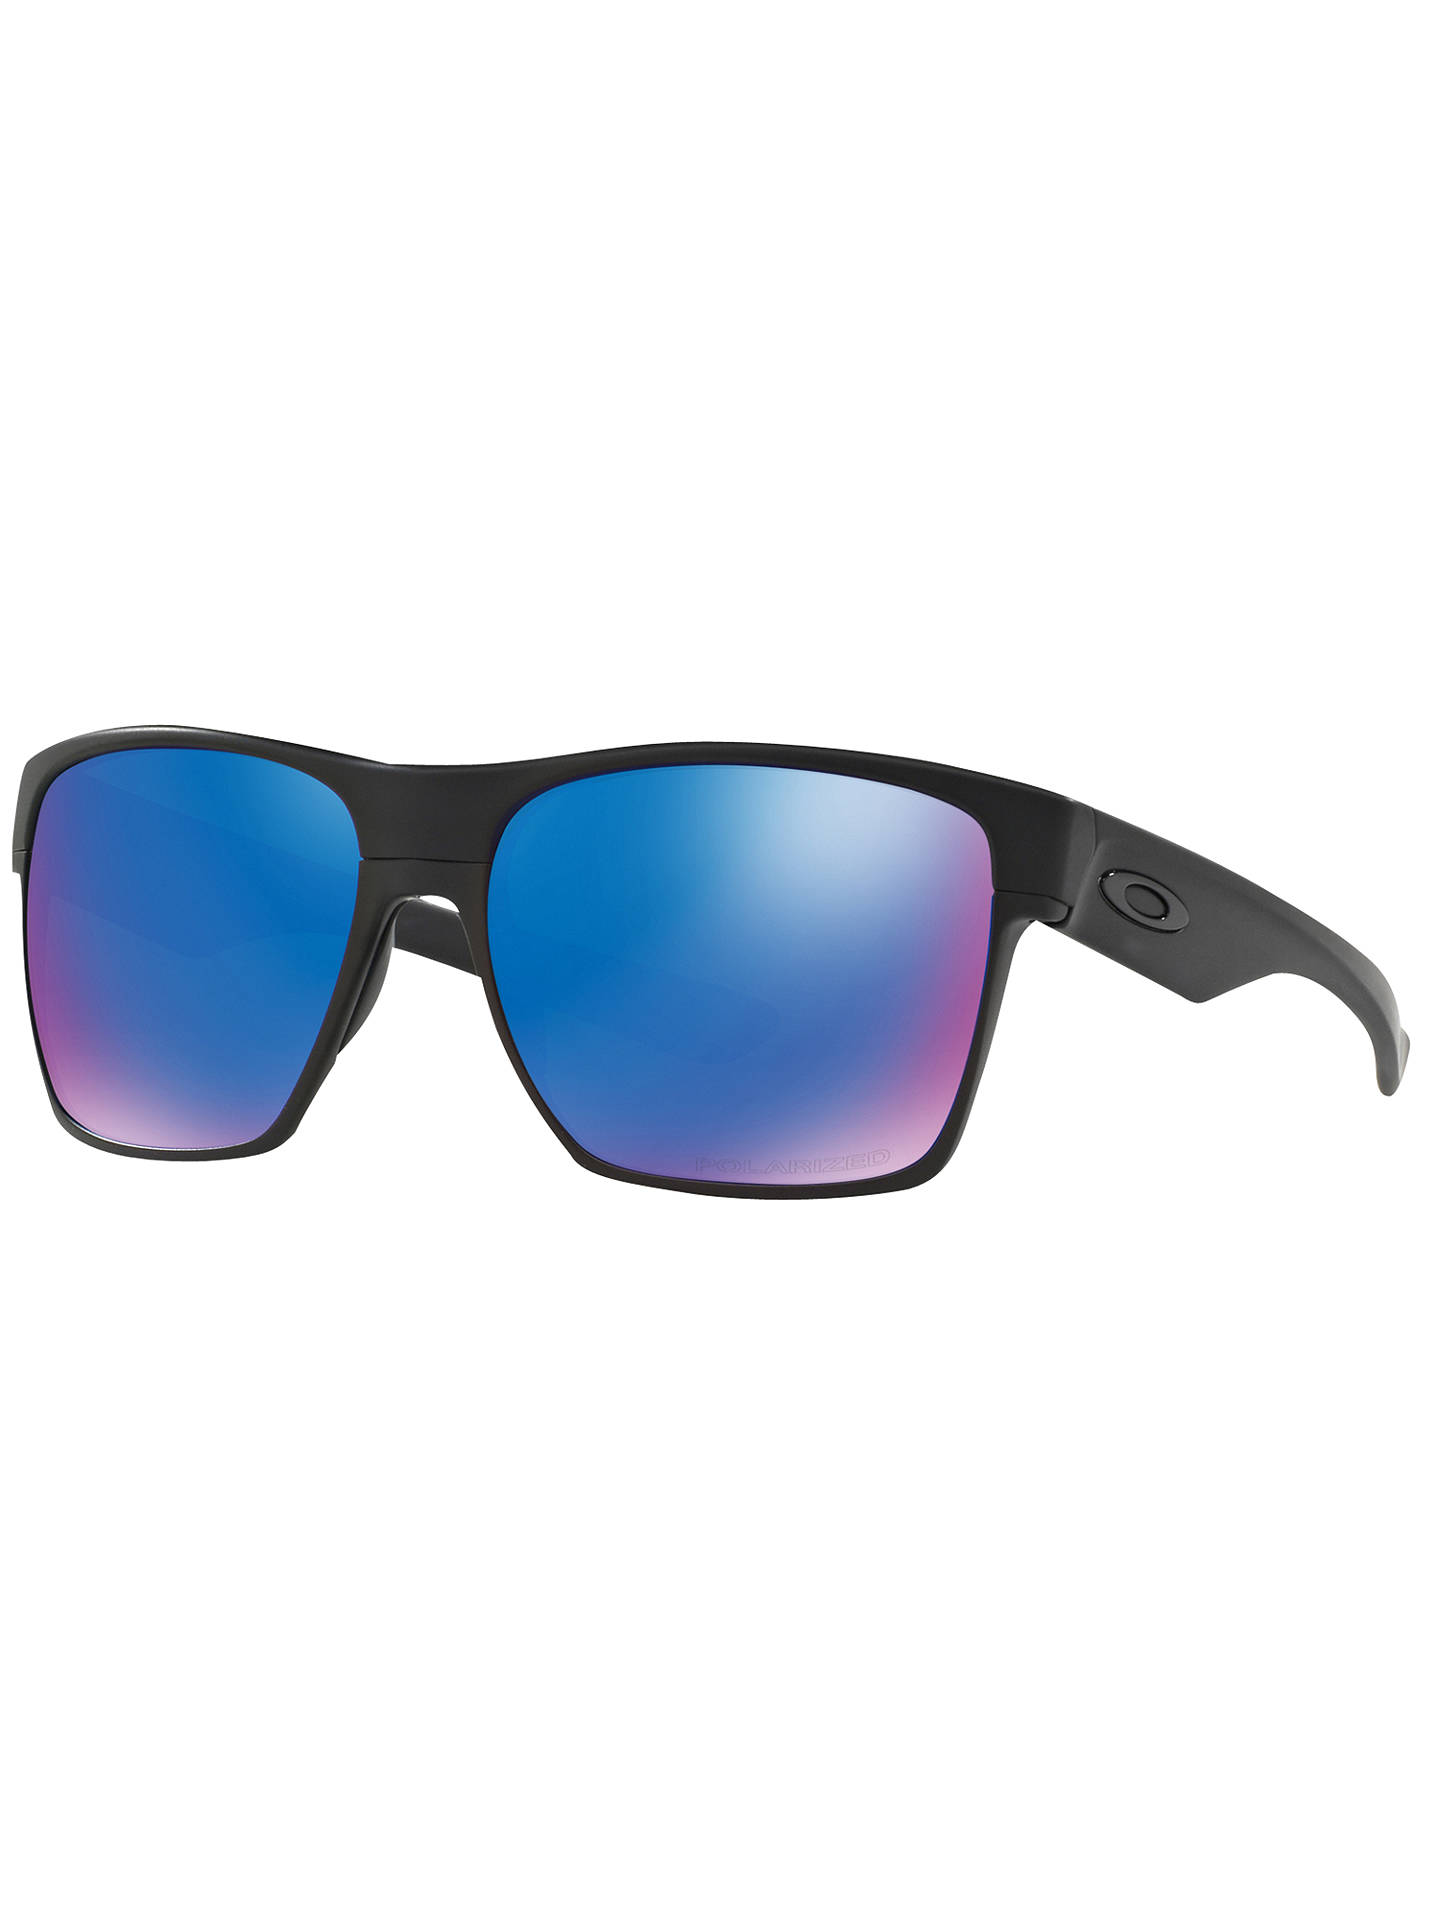 8fbd62a56f Oakley OO9350 Two Face XL Polarised Square Sunglasses at John Lewis ...